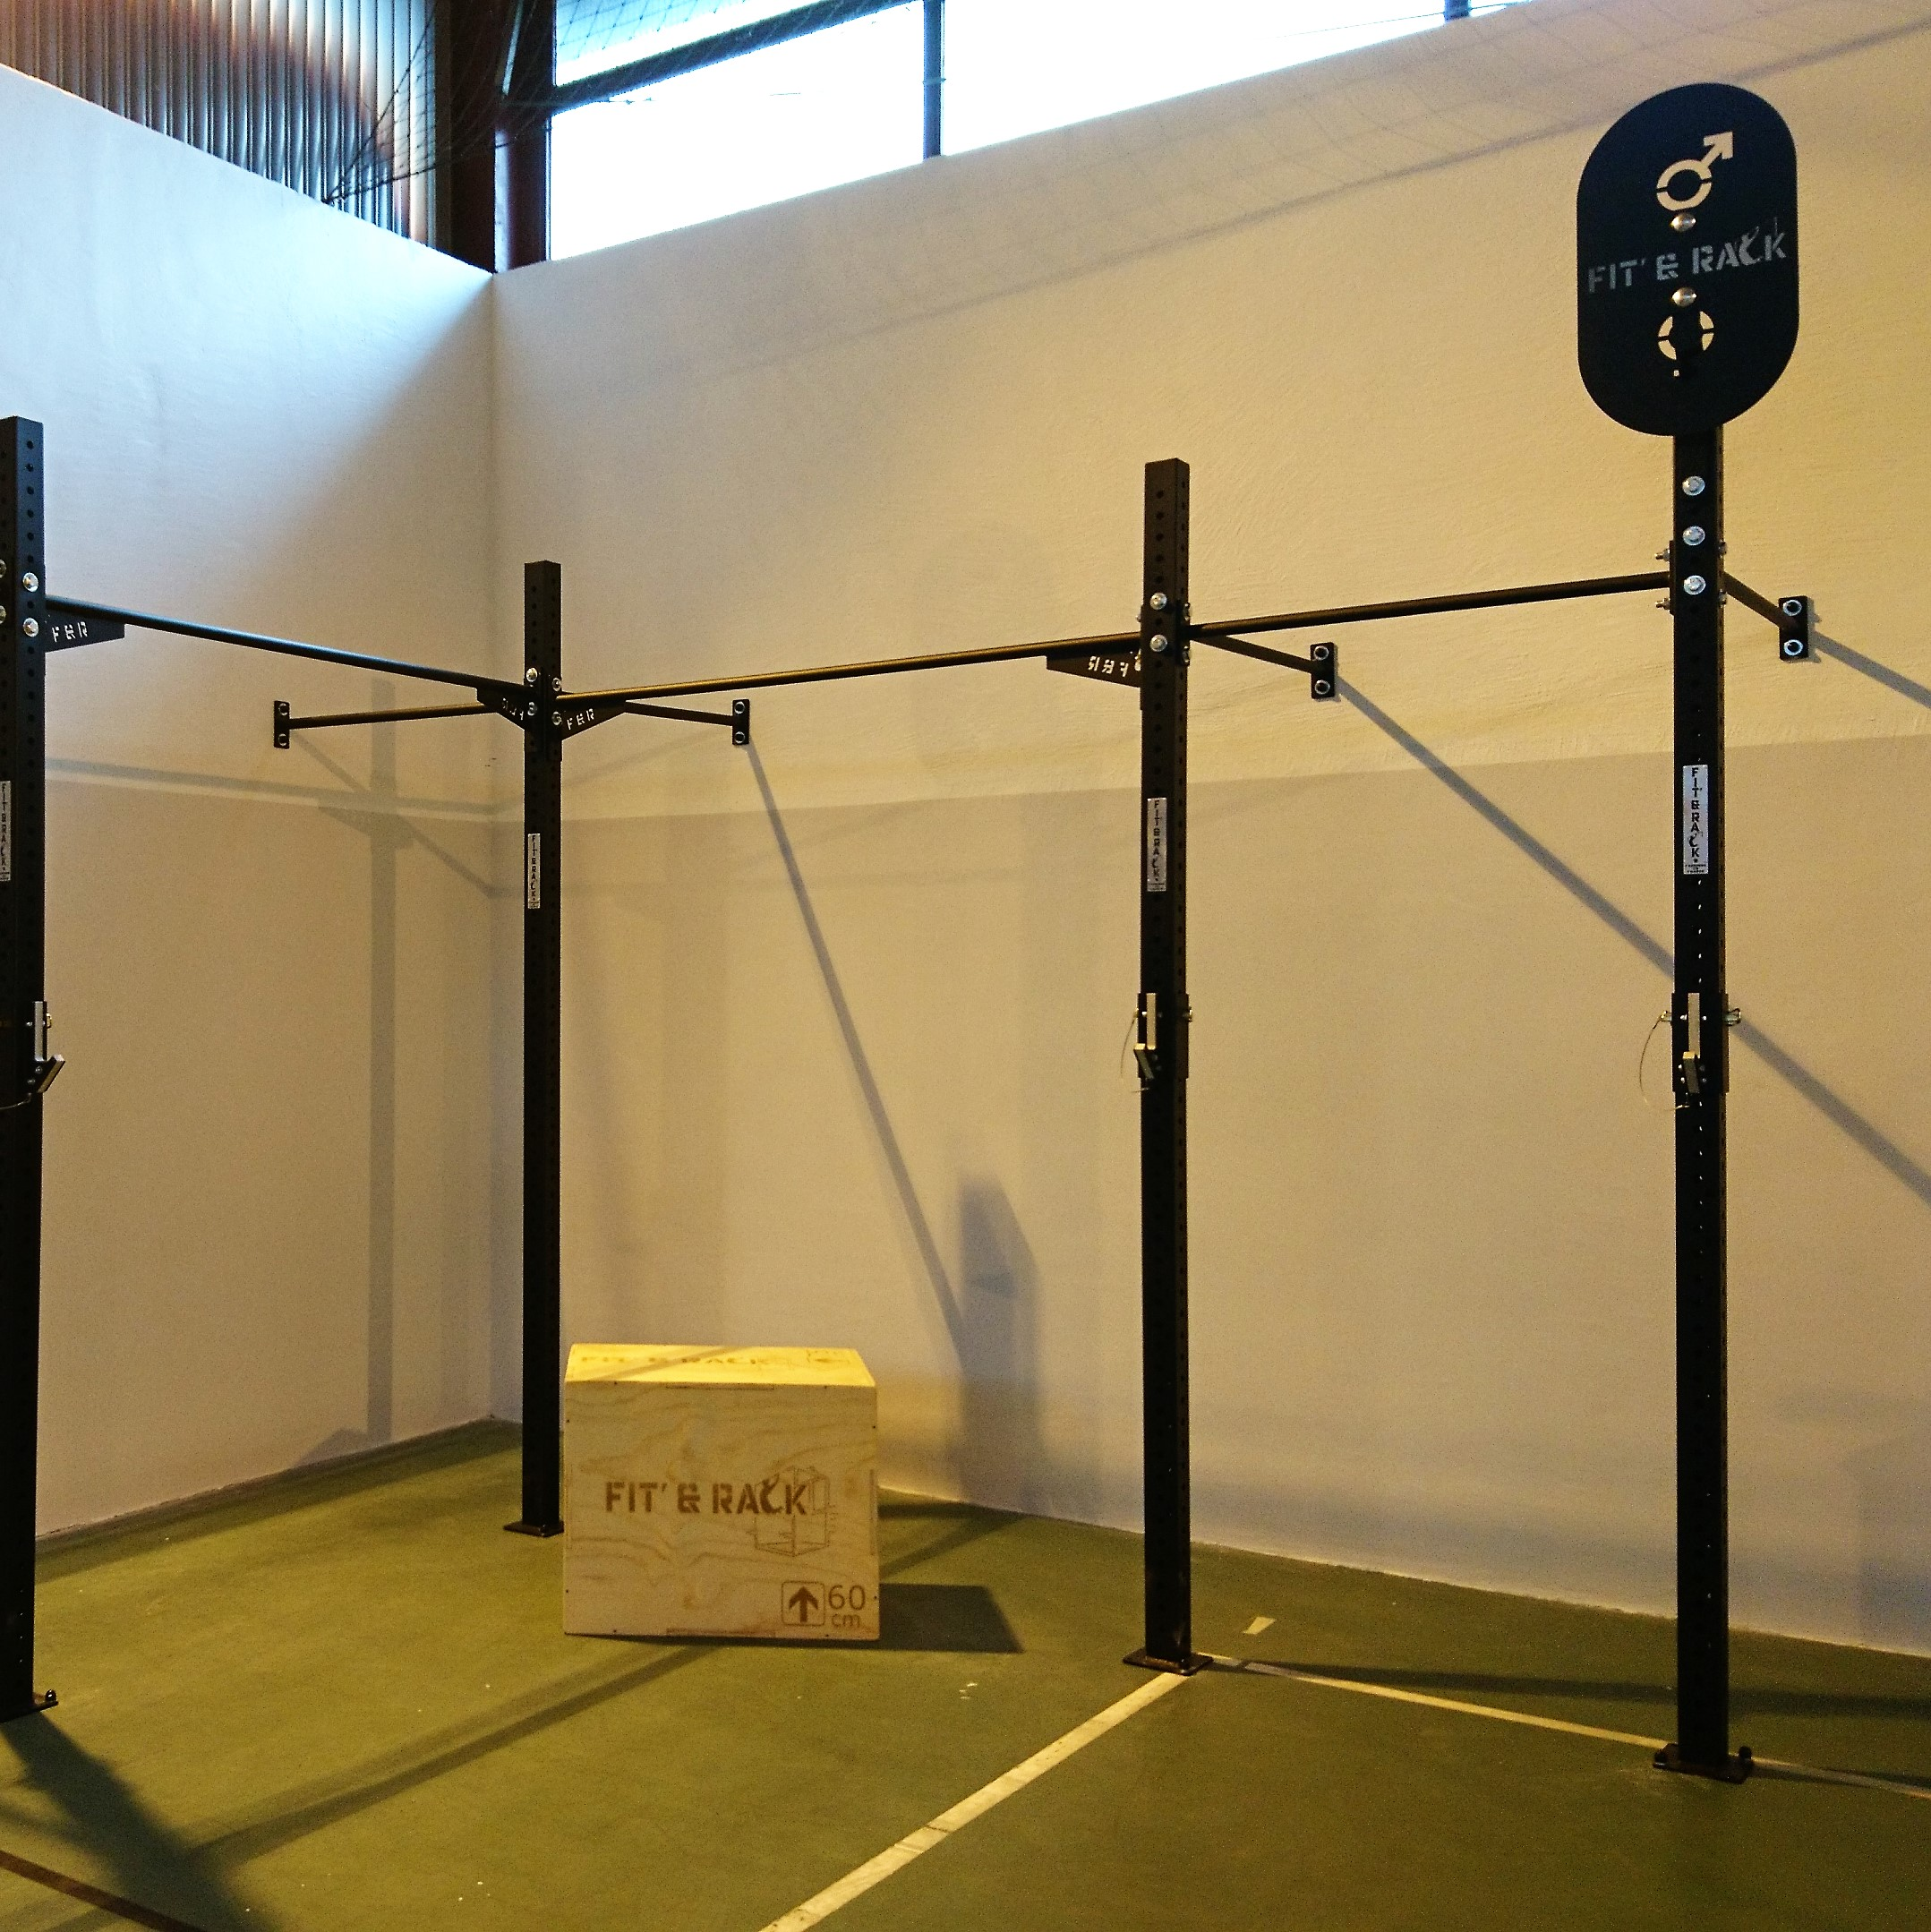 Cross-training gym